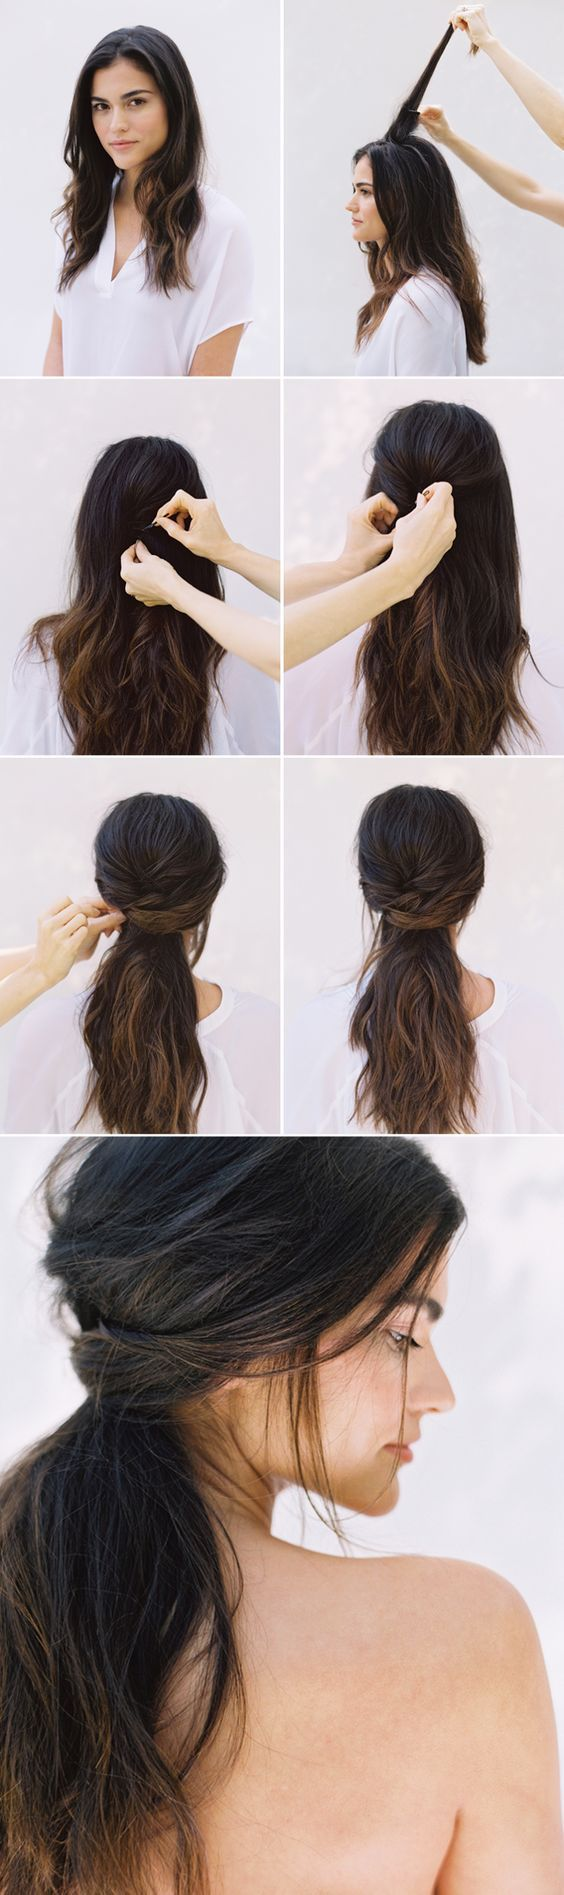 easy hair tutorials for curly hair simple hairstyles thicker